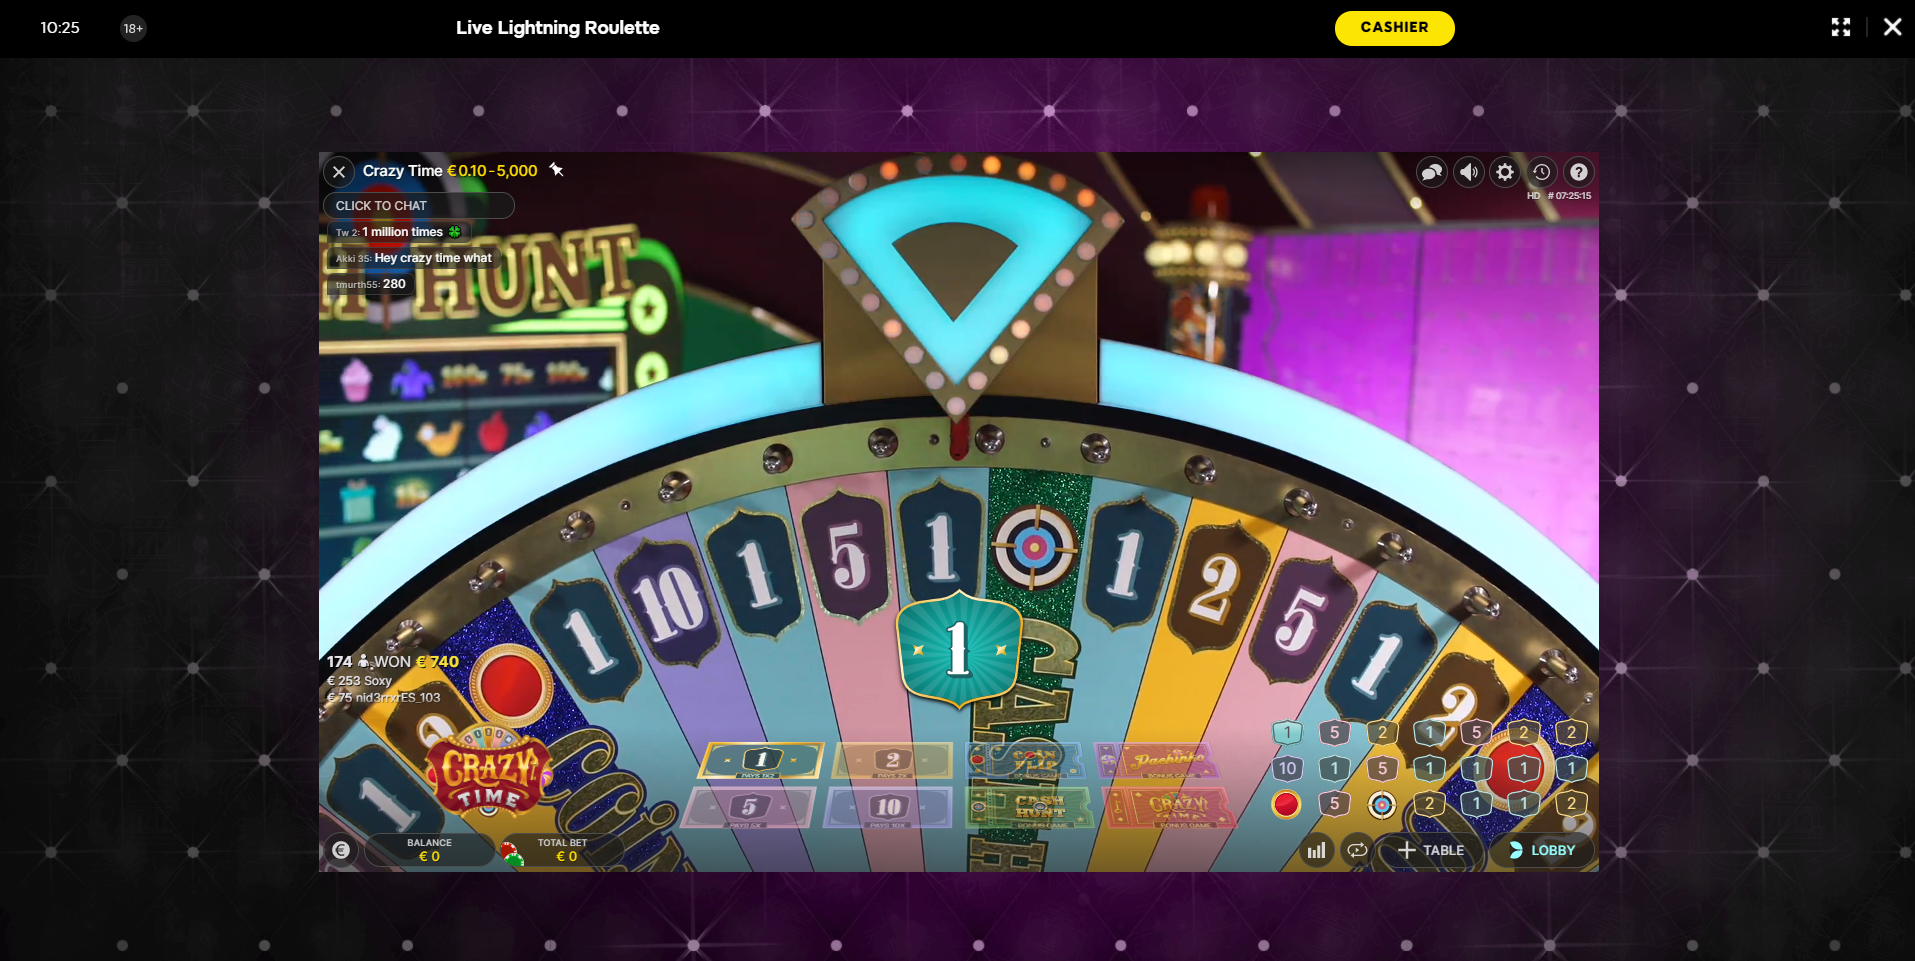 Best games to play at casino